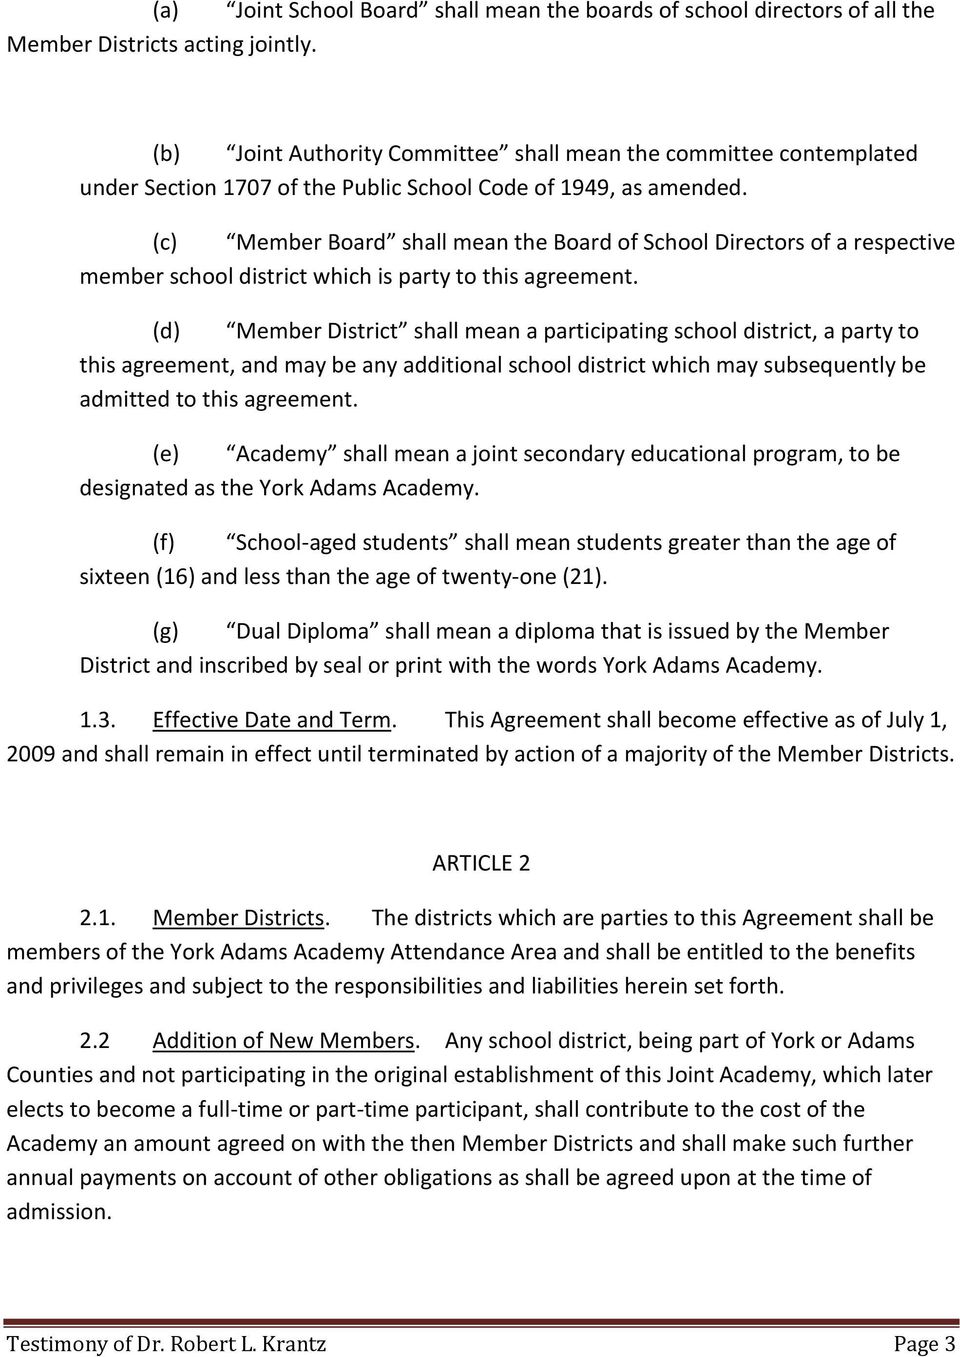 (c) Member Board shall mean the Board of School Directors of a respective member school district which is party to this agreement.